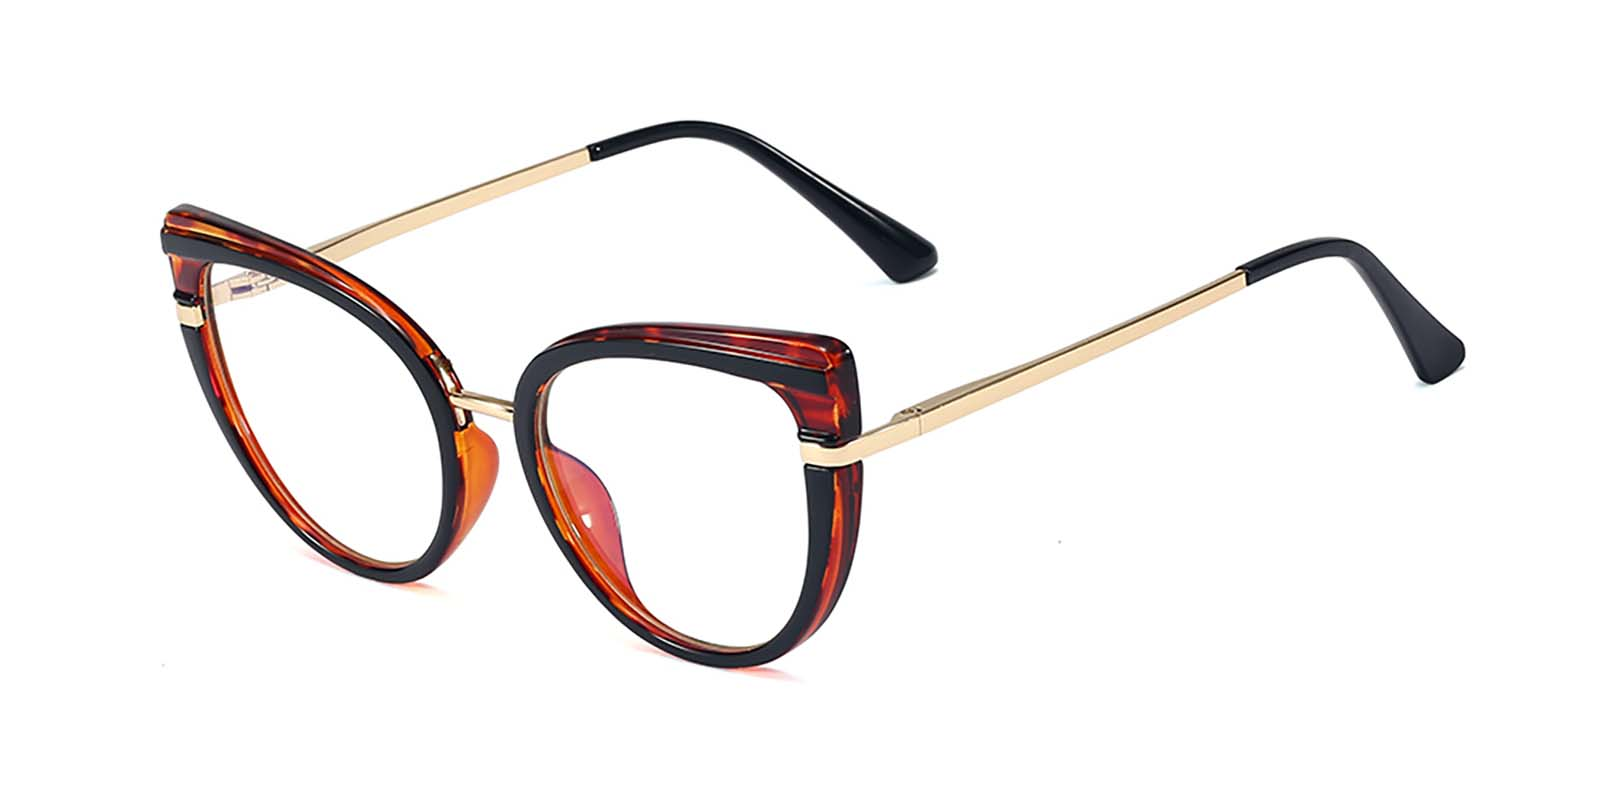 Kimora-Cat eye glasses with luxury embedded bright-colored metal hinges